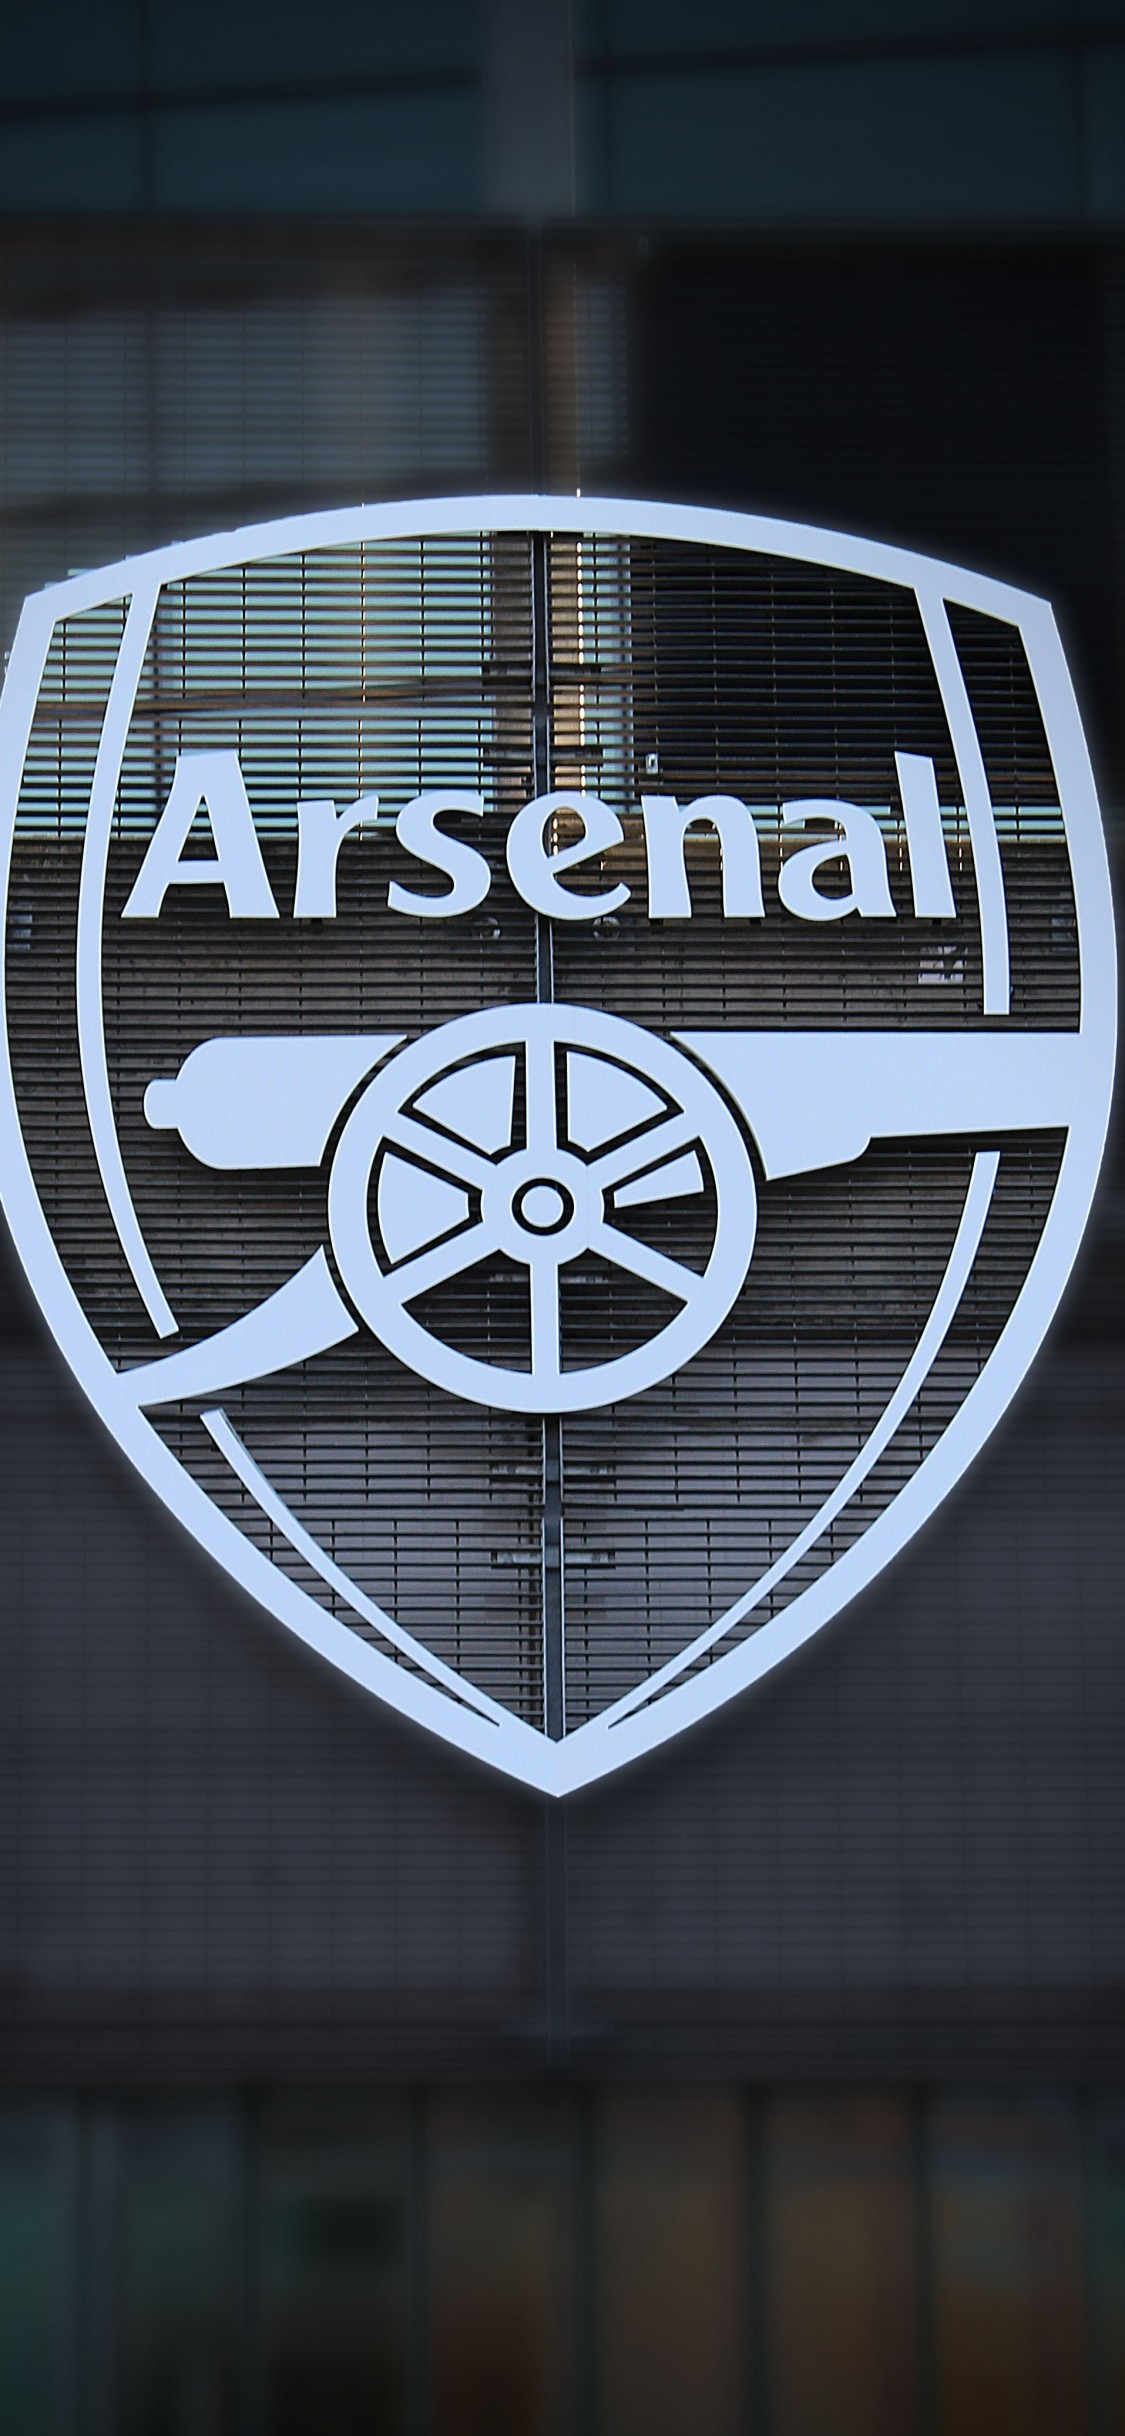 arsenal background posted by john anderson